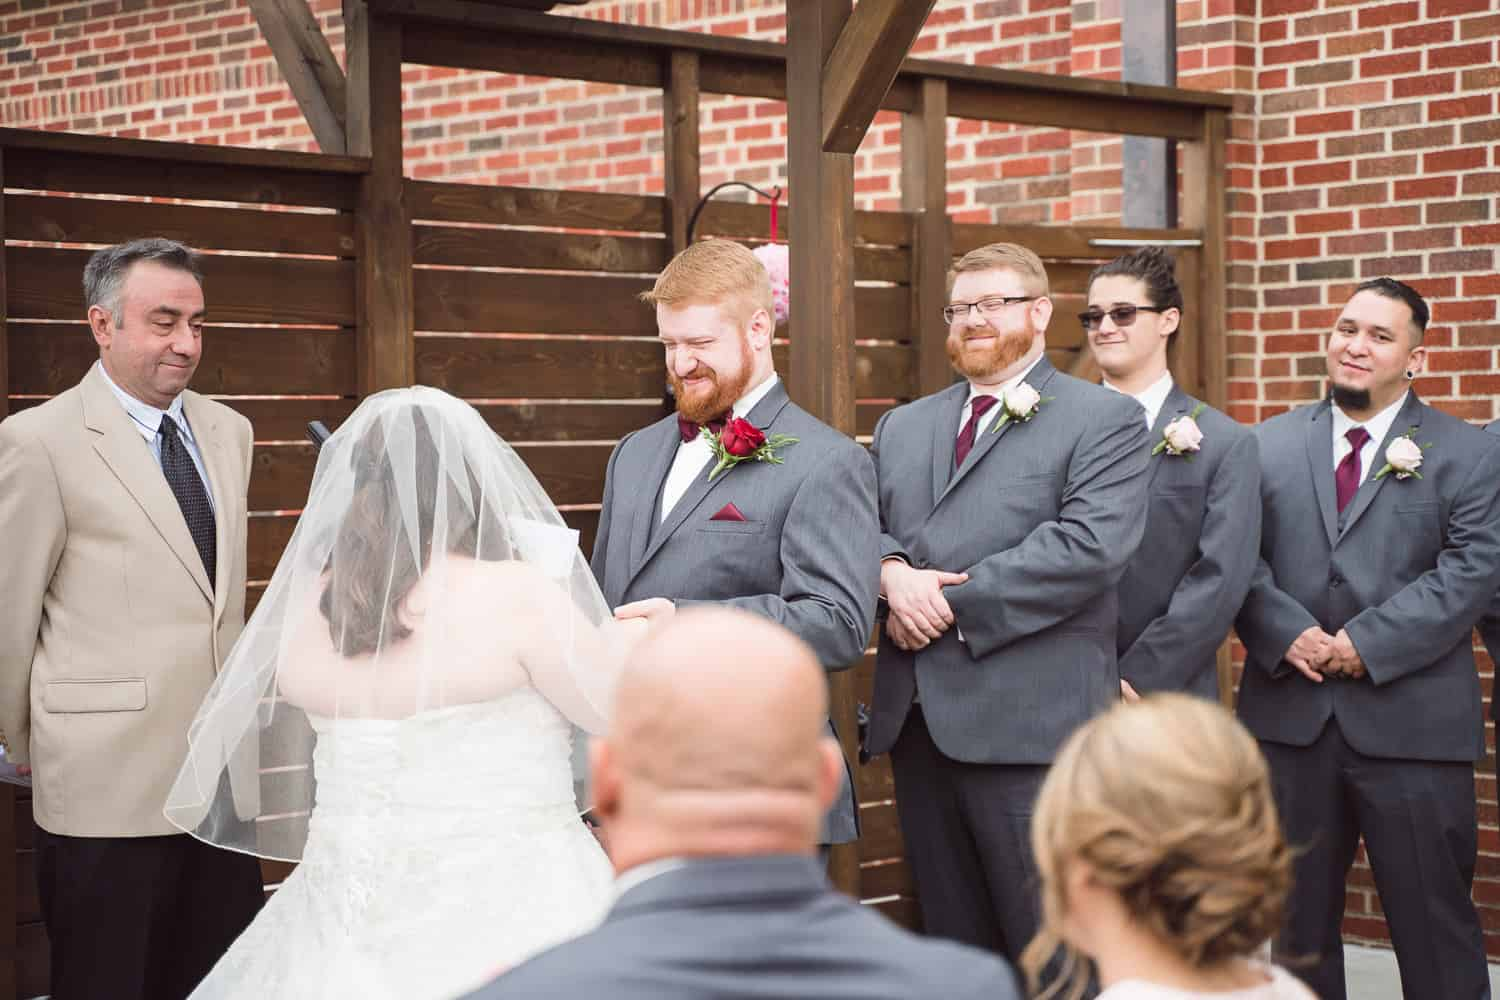 8th and Main Kansas City wedding ceremony